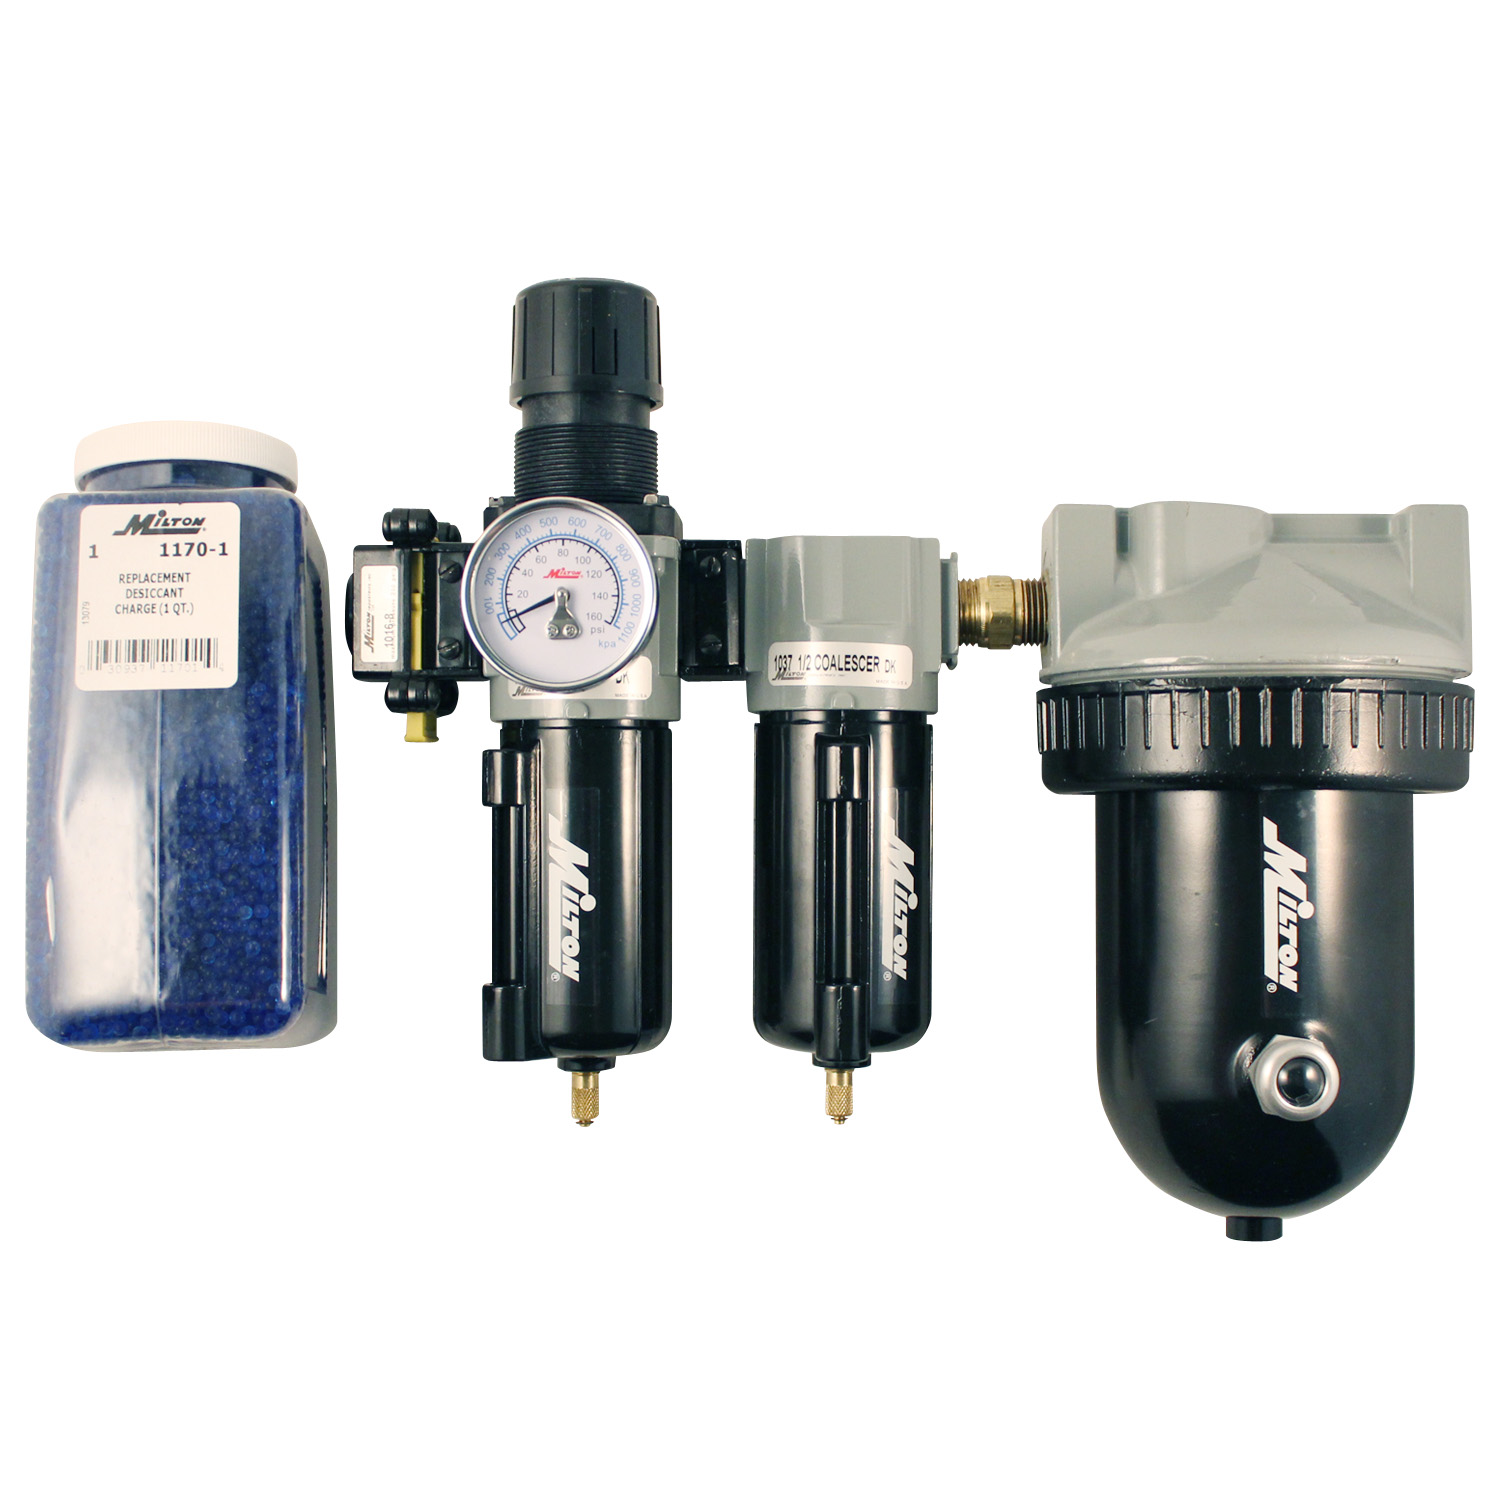 "Milton 1072 1/2"" Deluxe Desiccant Dryer System"